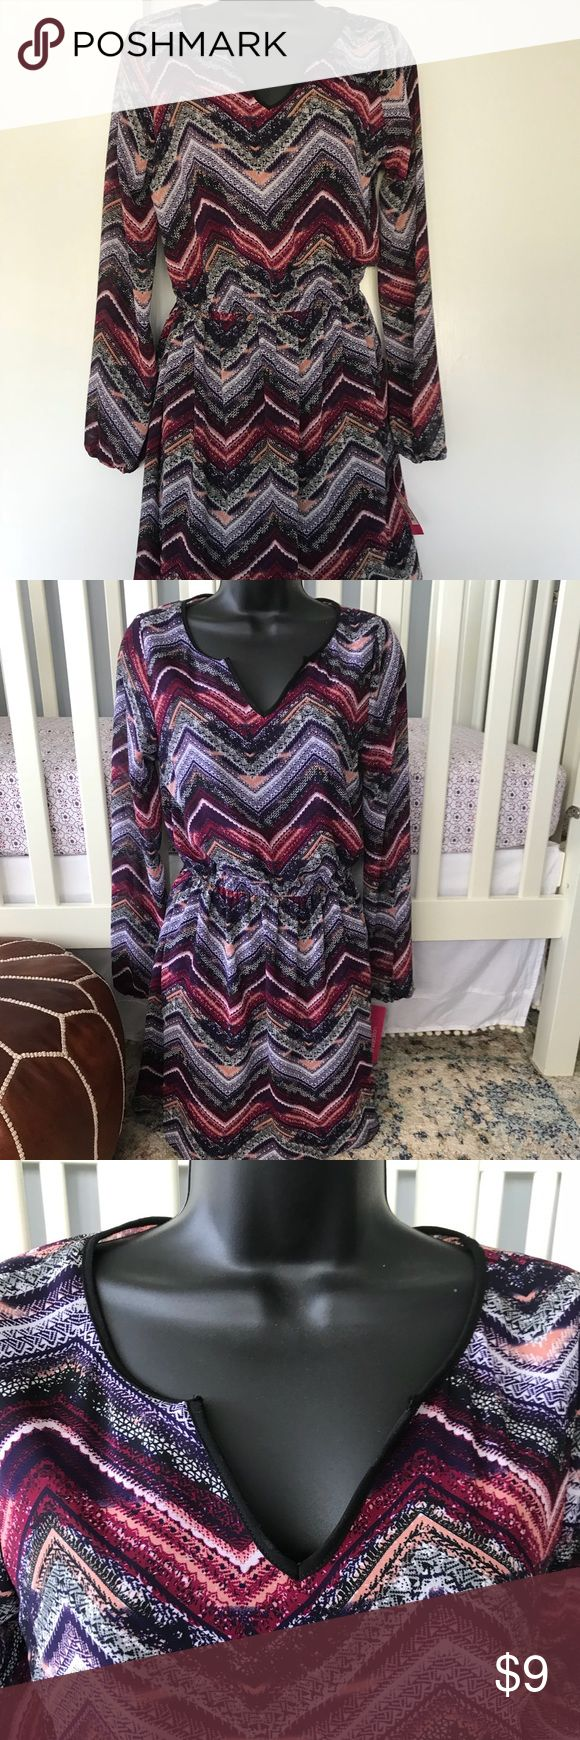 Boho Chevron print dress Super cute boho chevron print dress from Xhiliration. Has black lining underneath. Keyhole cut on back. Elastic on waist and sleeve ends. Brand new with tags. Never worn; excellent condition. Purchased at Target. Really cute with tall boots and leggings!  All offers welcome! Xhilaration Dresses Mini